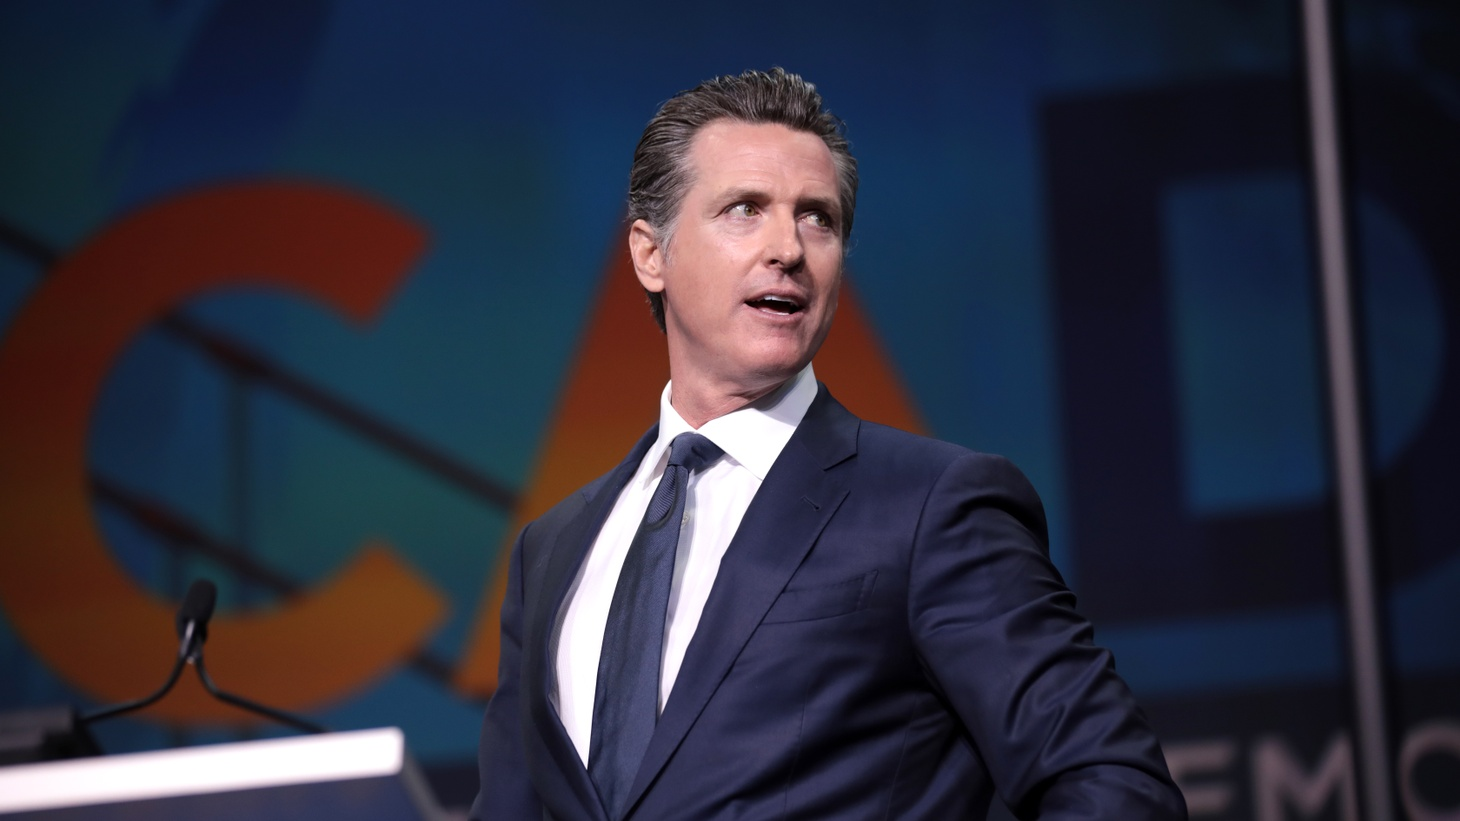 California Governor Gavin Newsom is facing a recall campaign that claims to have collected more than 1.2 million signatures.